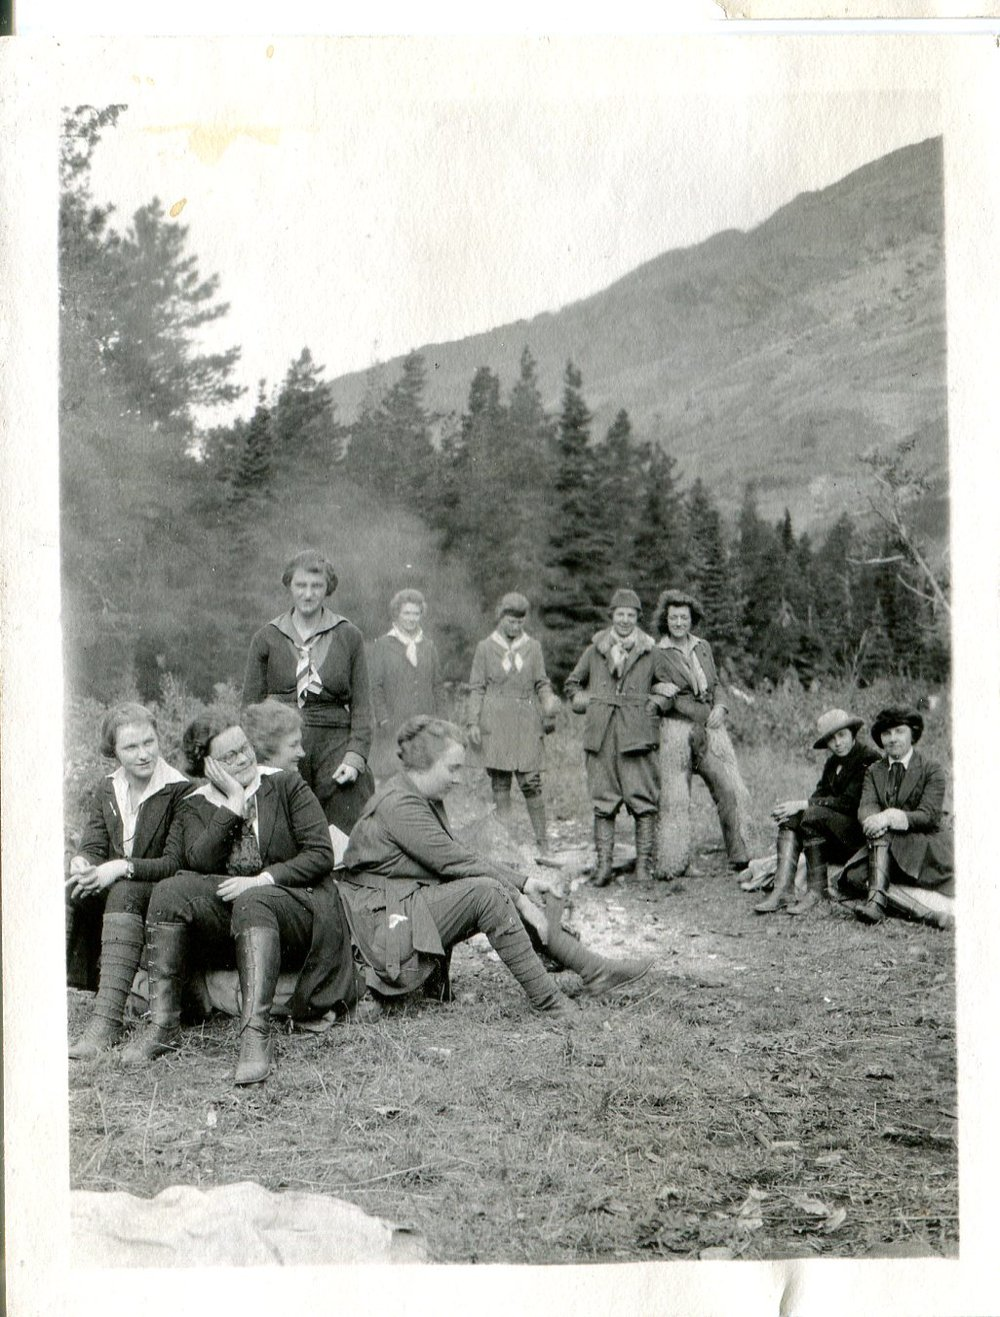 Vintage Camping Photos /// Vintage photo of a group of women hiking or camping in the 1920s, possibly earlier.